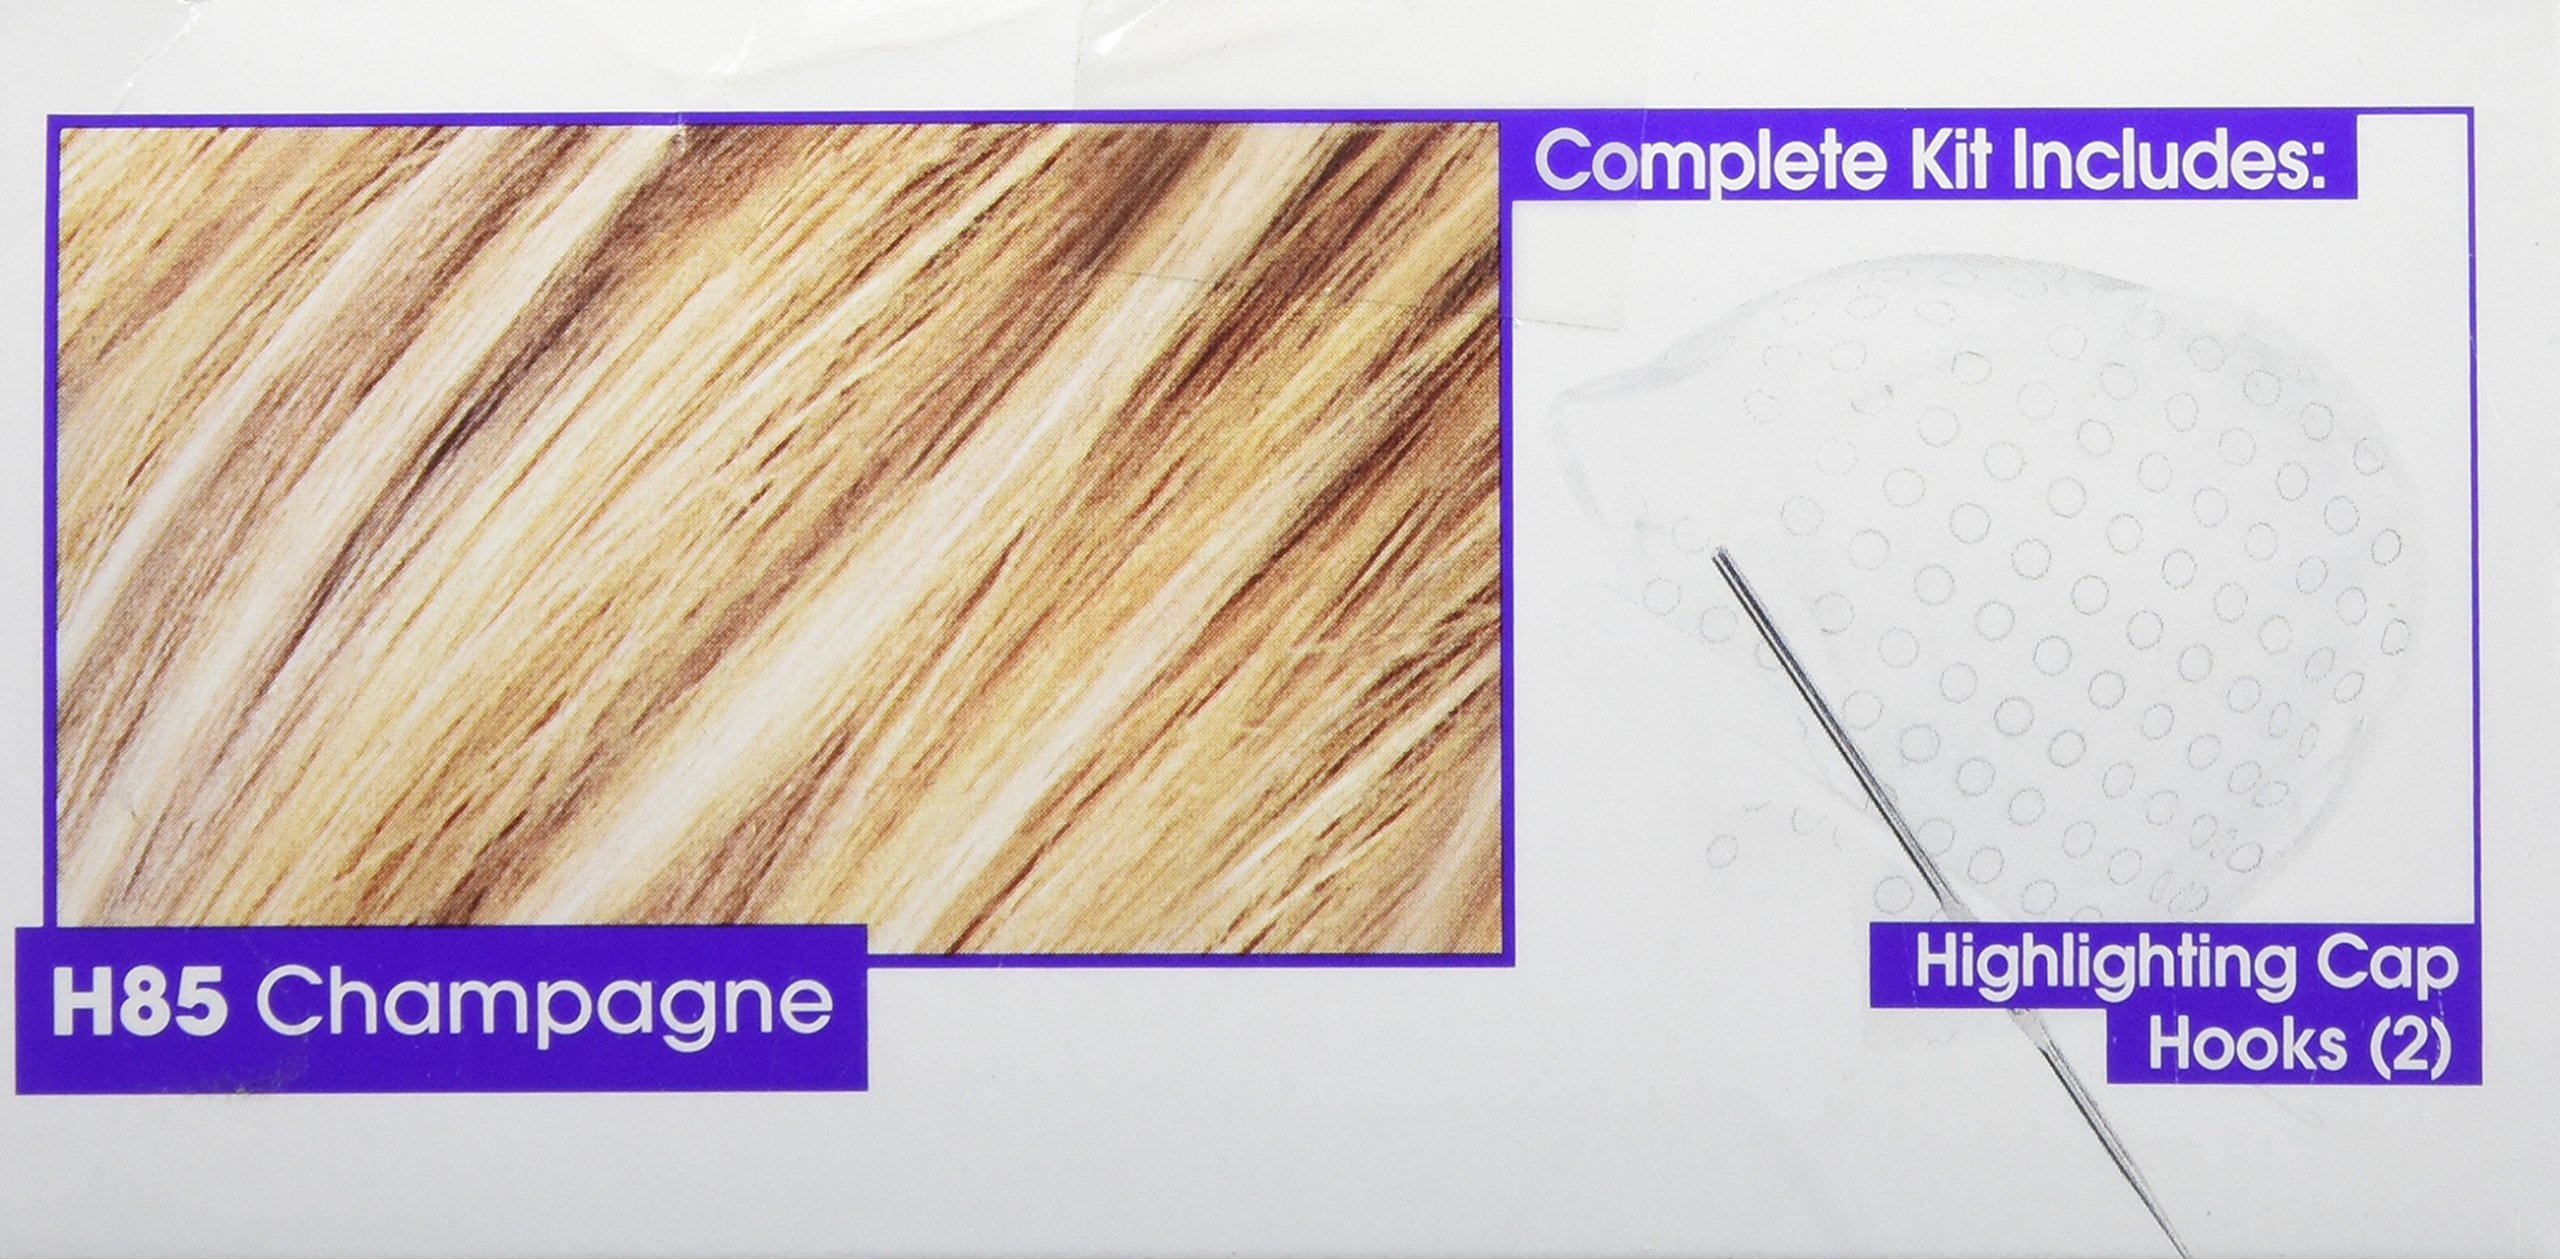 L'Oréal Paris Frost and Design Cap Hair Highlights For Long Hair, H85 Champagne by L'Oreal Paris (Image #11)